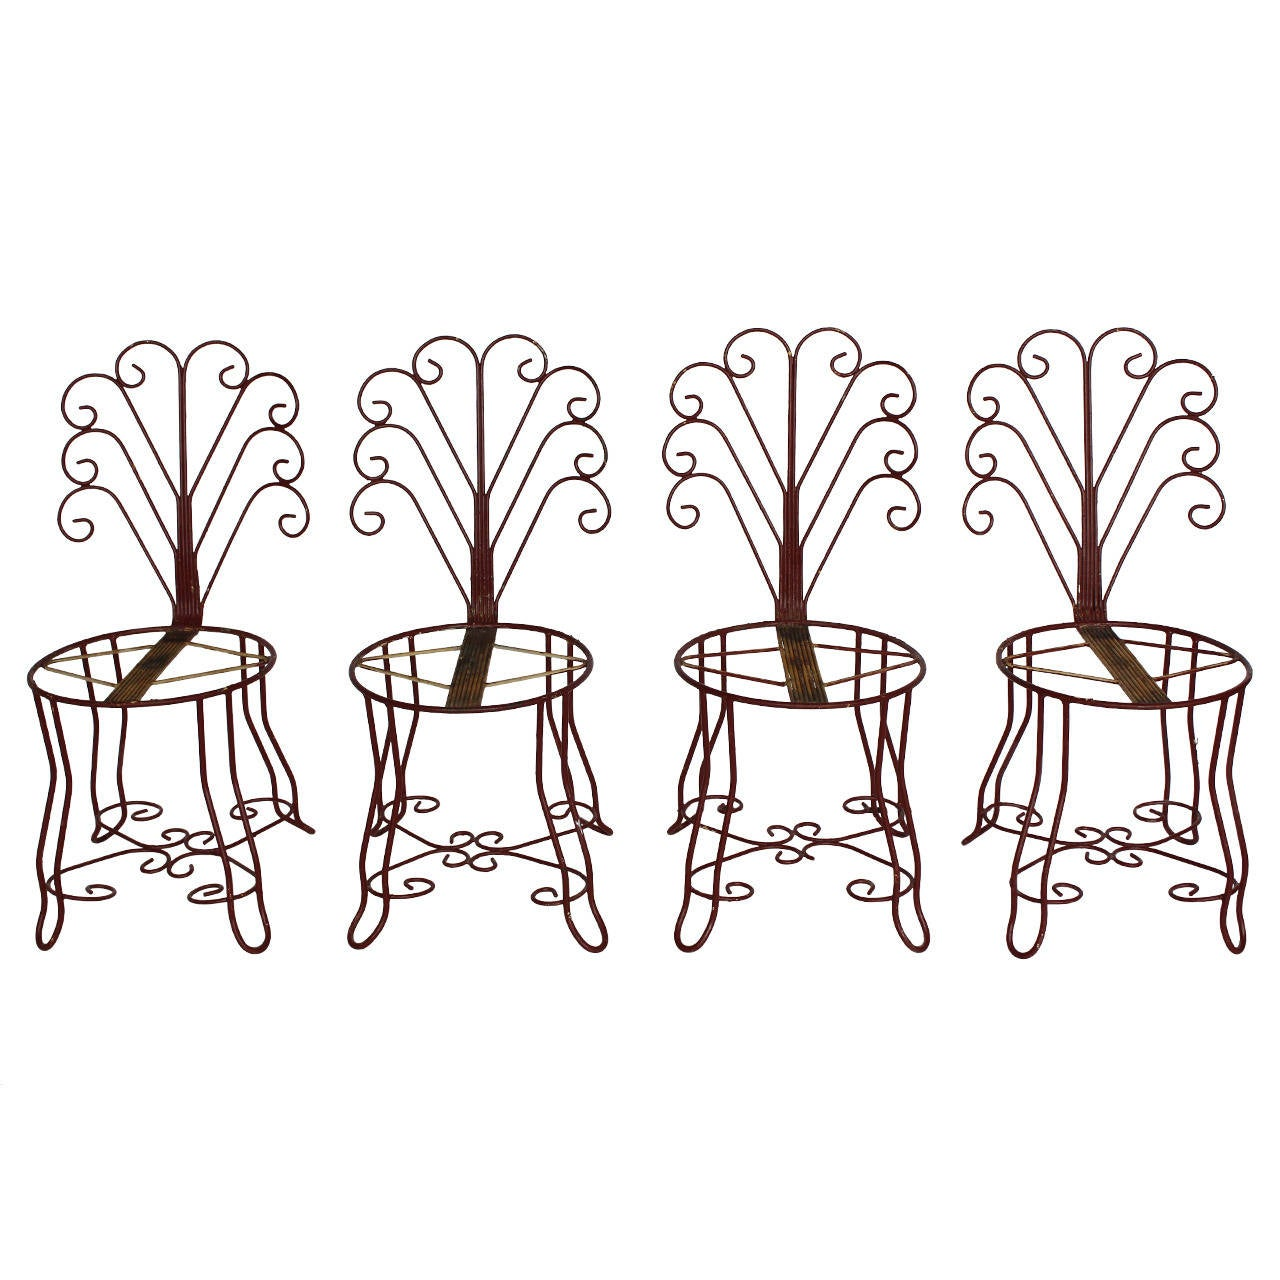 1930s French Iron Garden Chairs